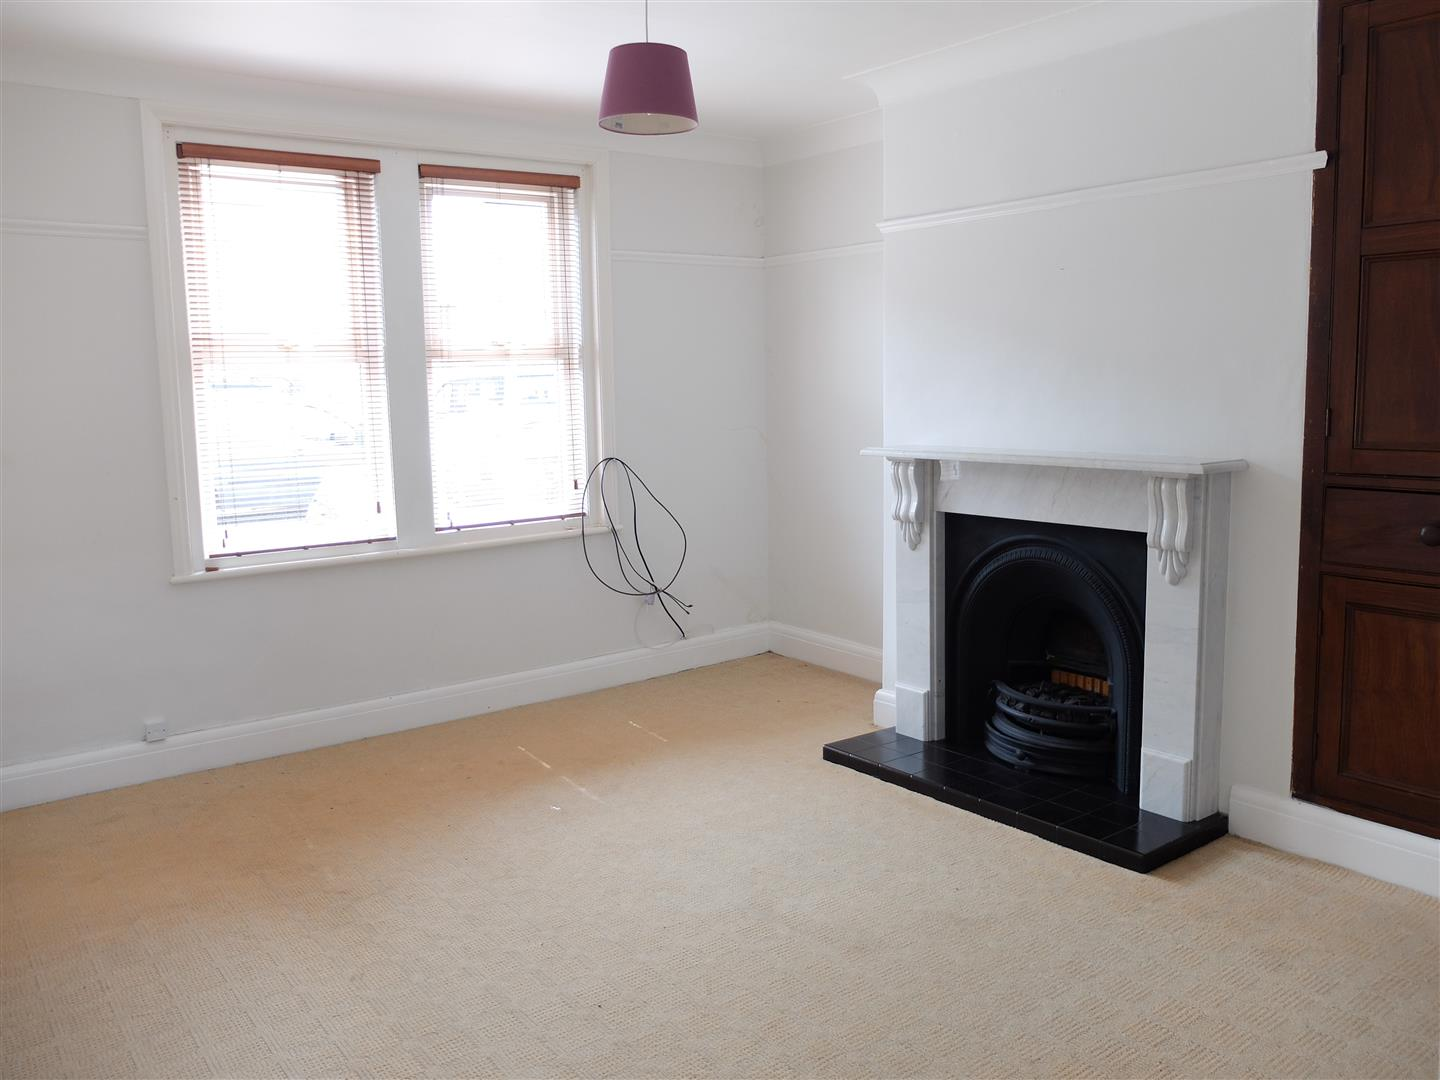 3 Bedrooms House - Mid Terrace For Sale 34 Freer Street Carlisle